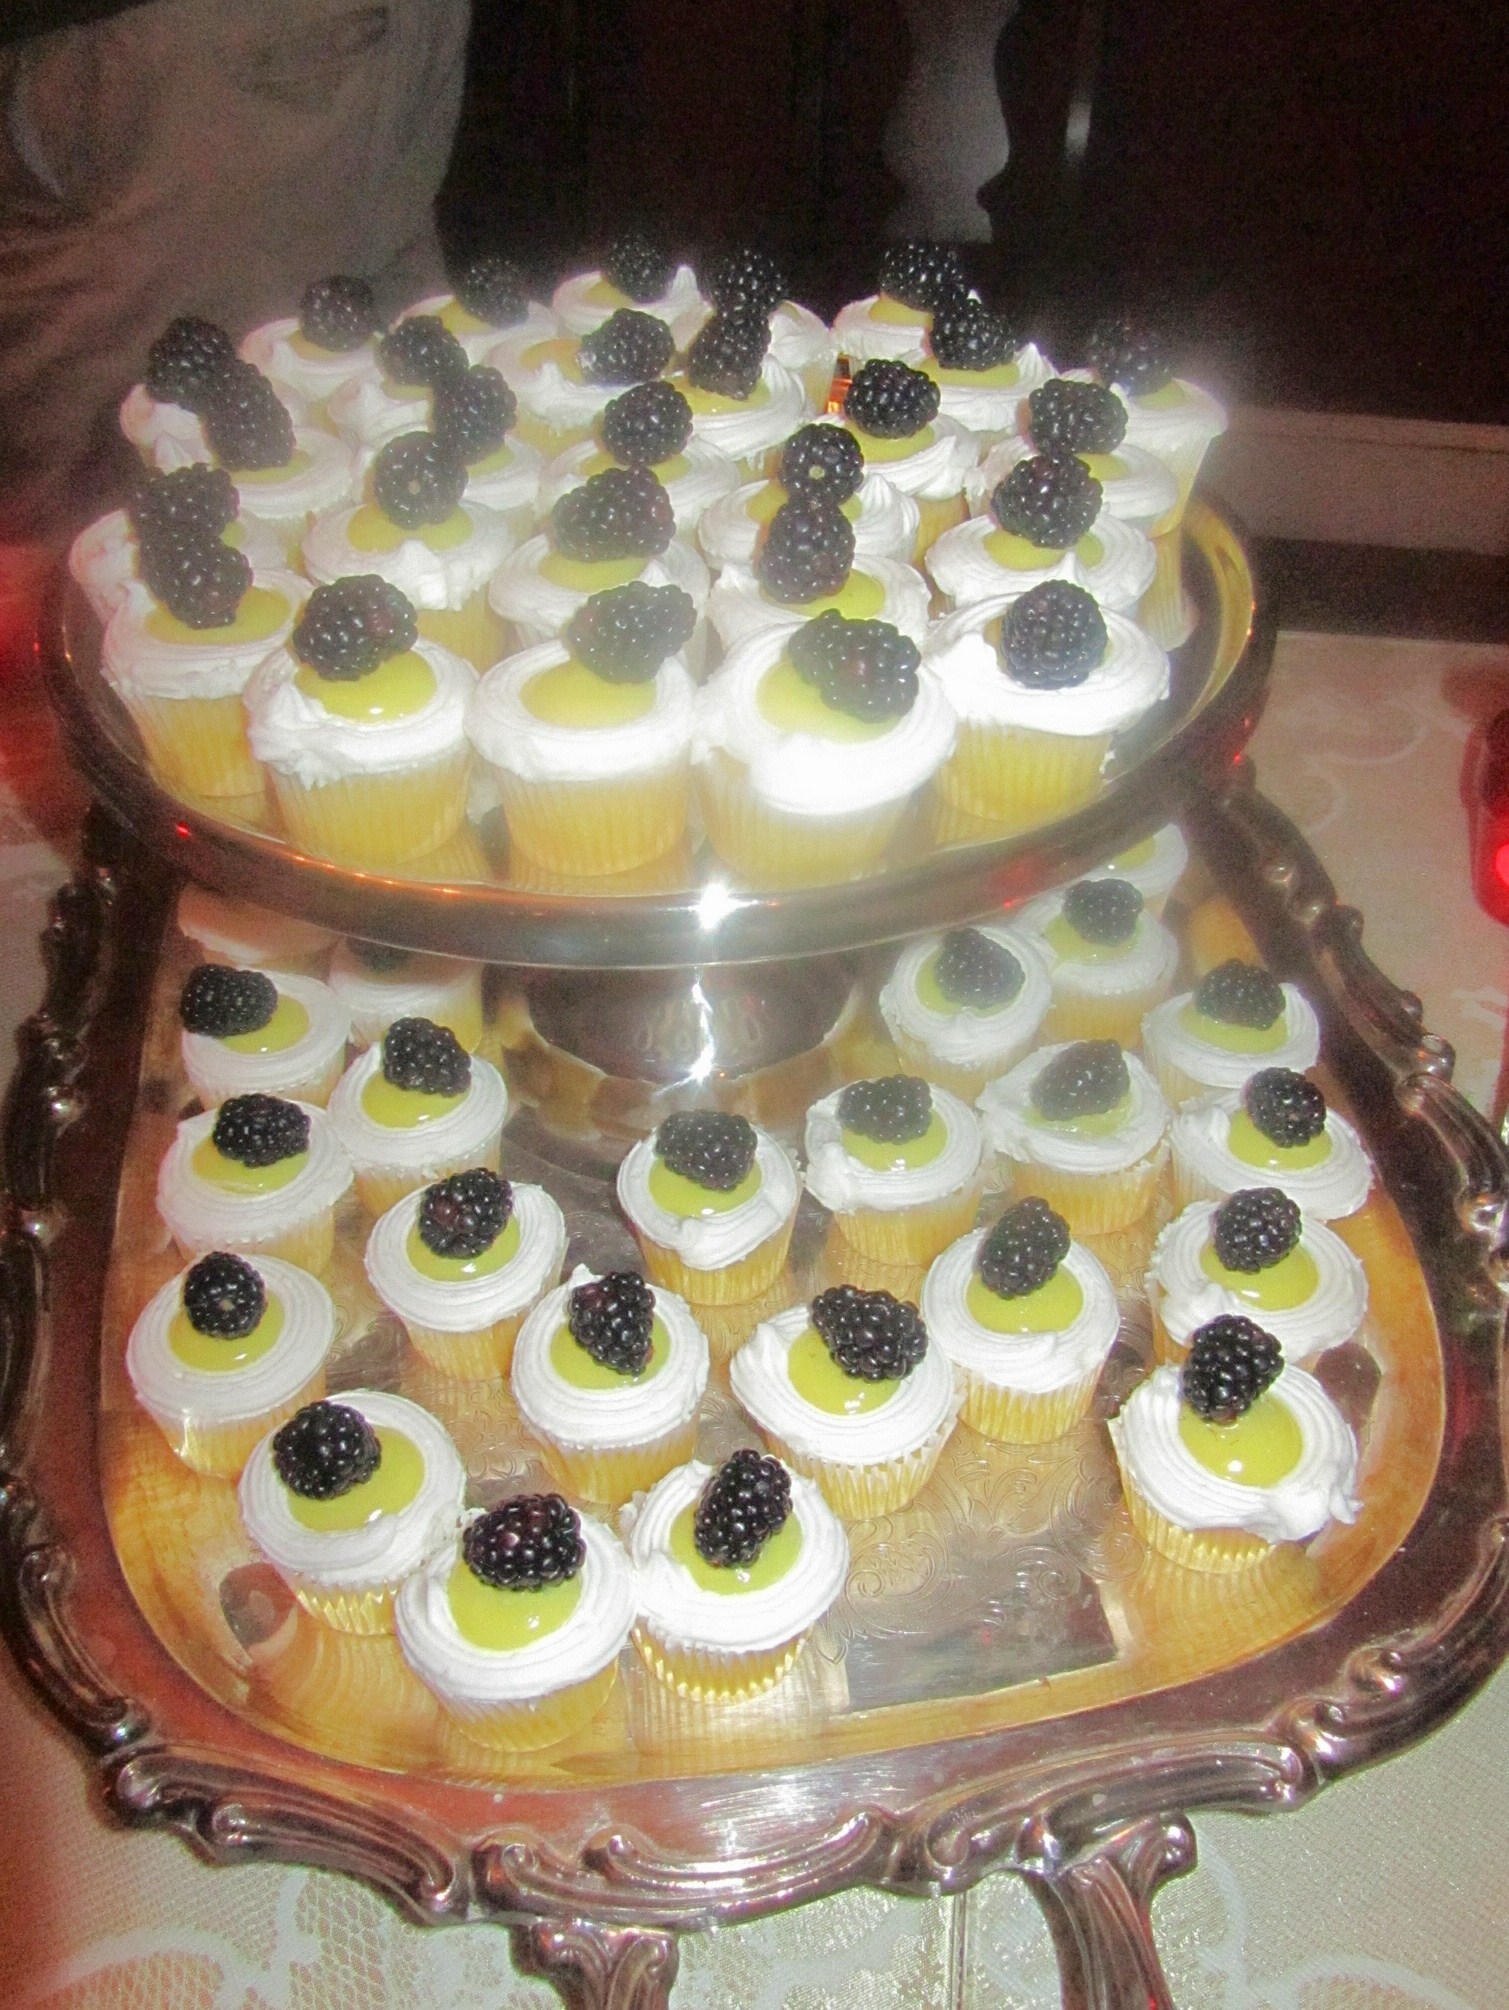 These lemony tea cakes were a particular hit.